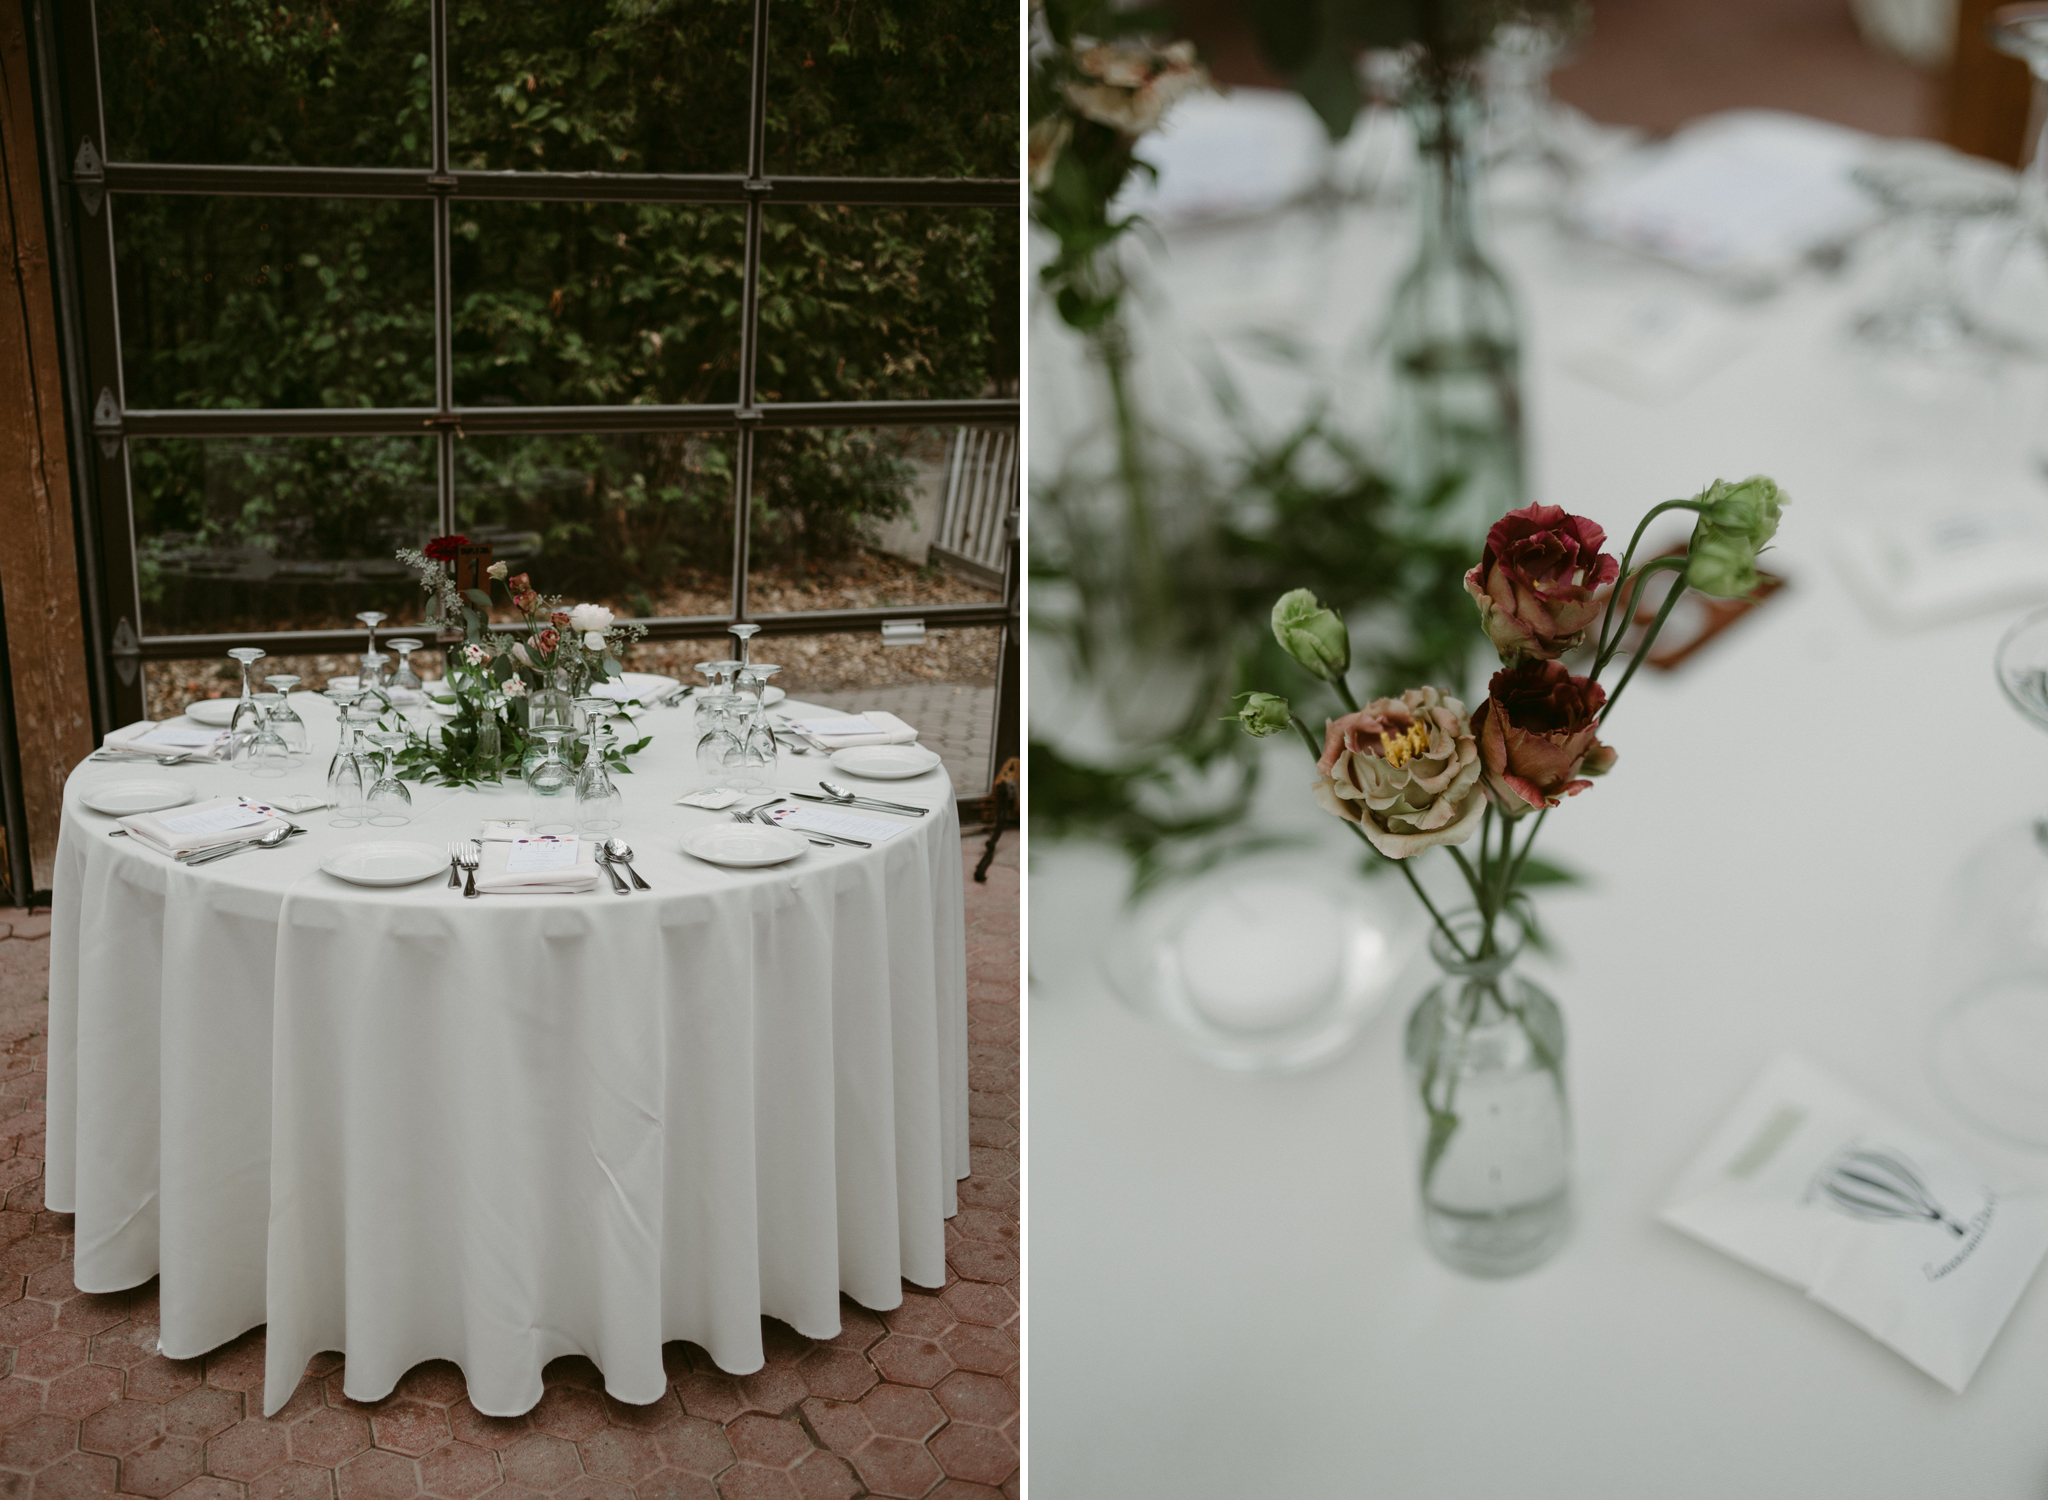 Romantic wedding reception table set up with simple flowers in glass vases